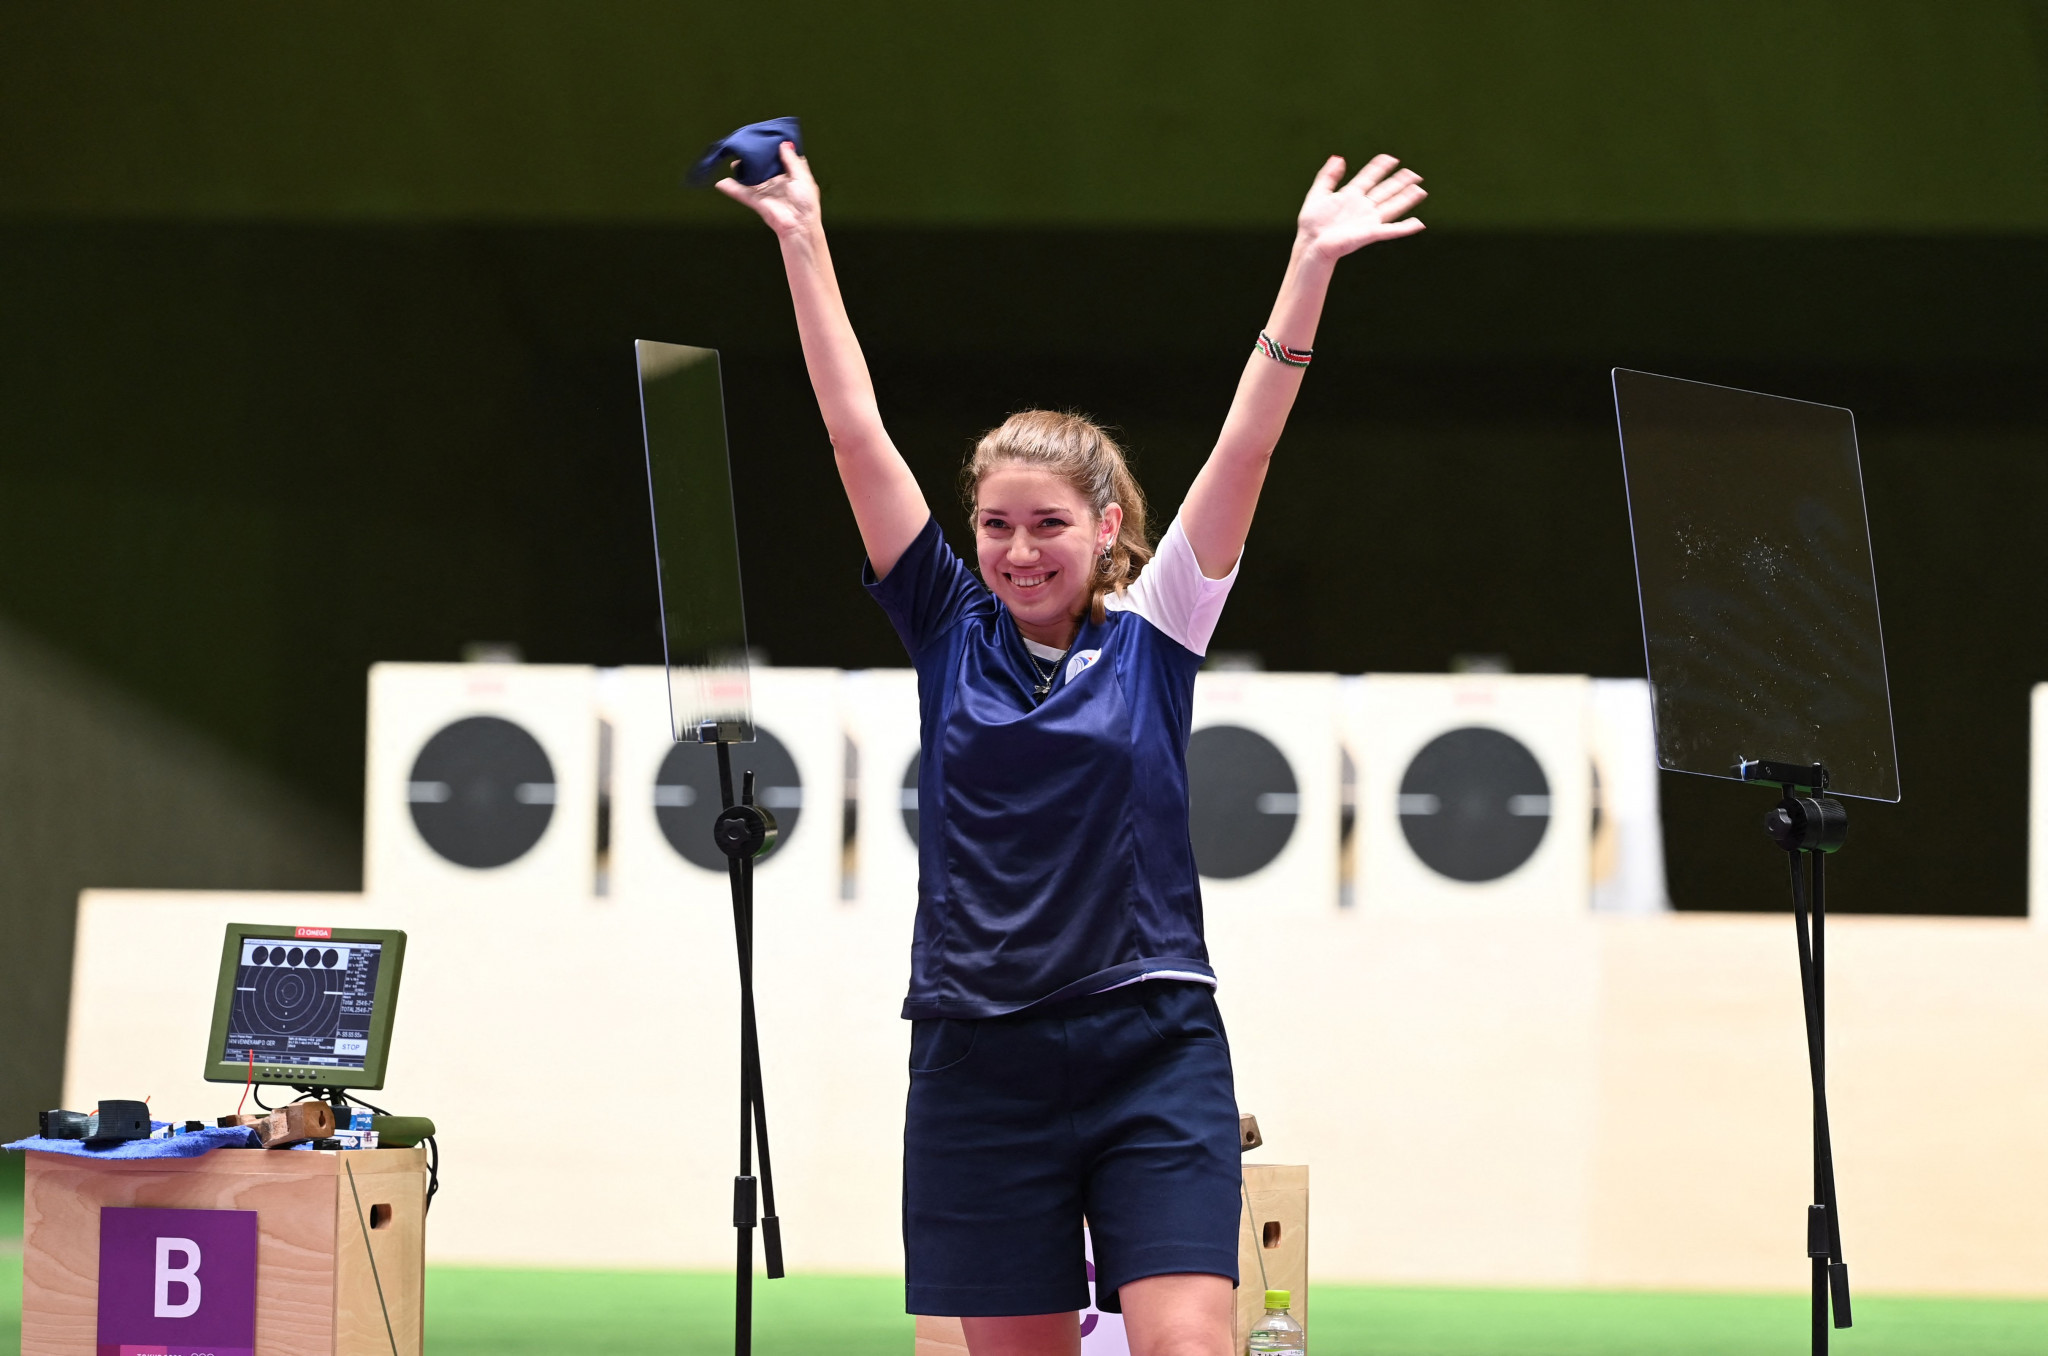 Vitalina Batsarashkina celebrates winning her second gold medal at Tokyo 2020 for the ROC, with an Olympic record score in the women's 25m air pistol shooting final ©Getty Images